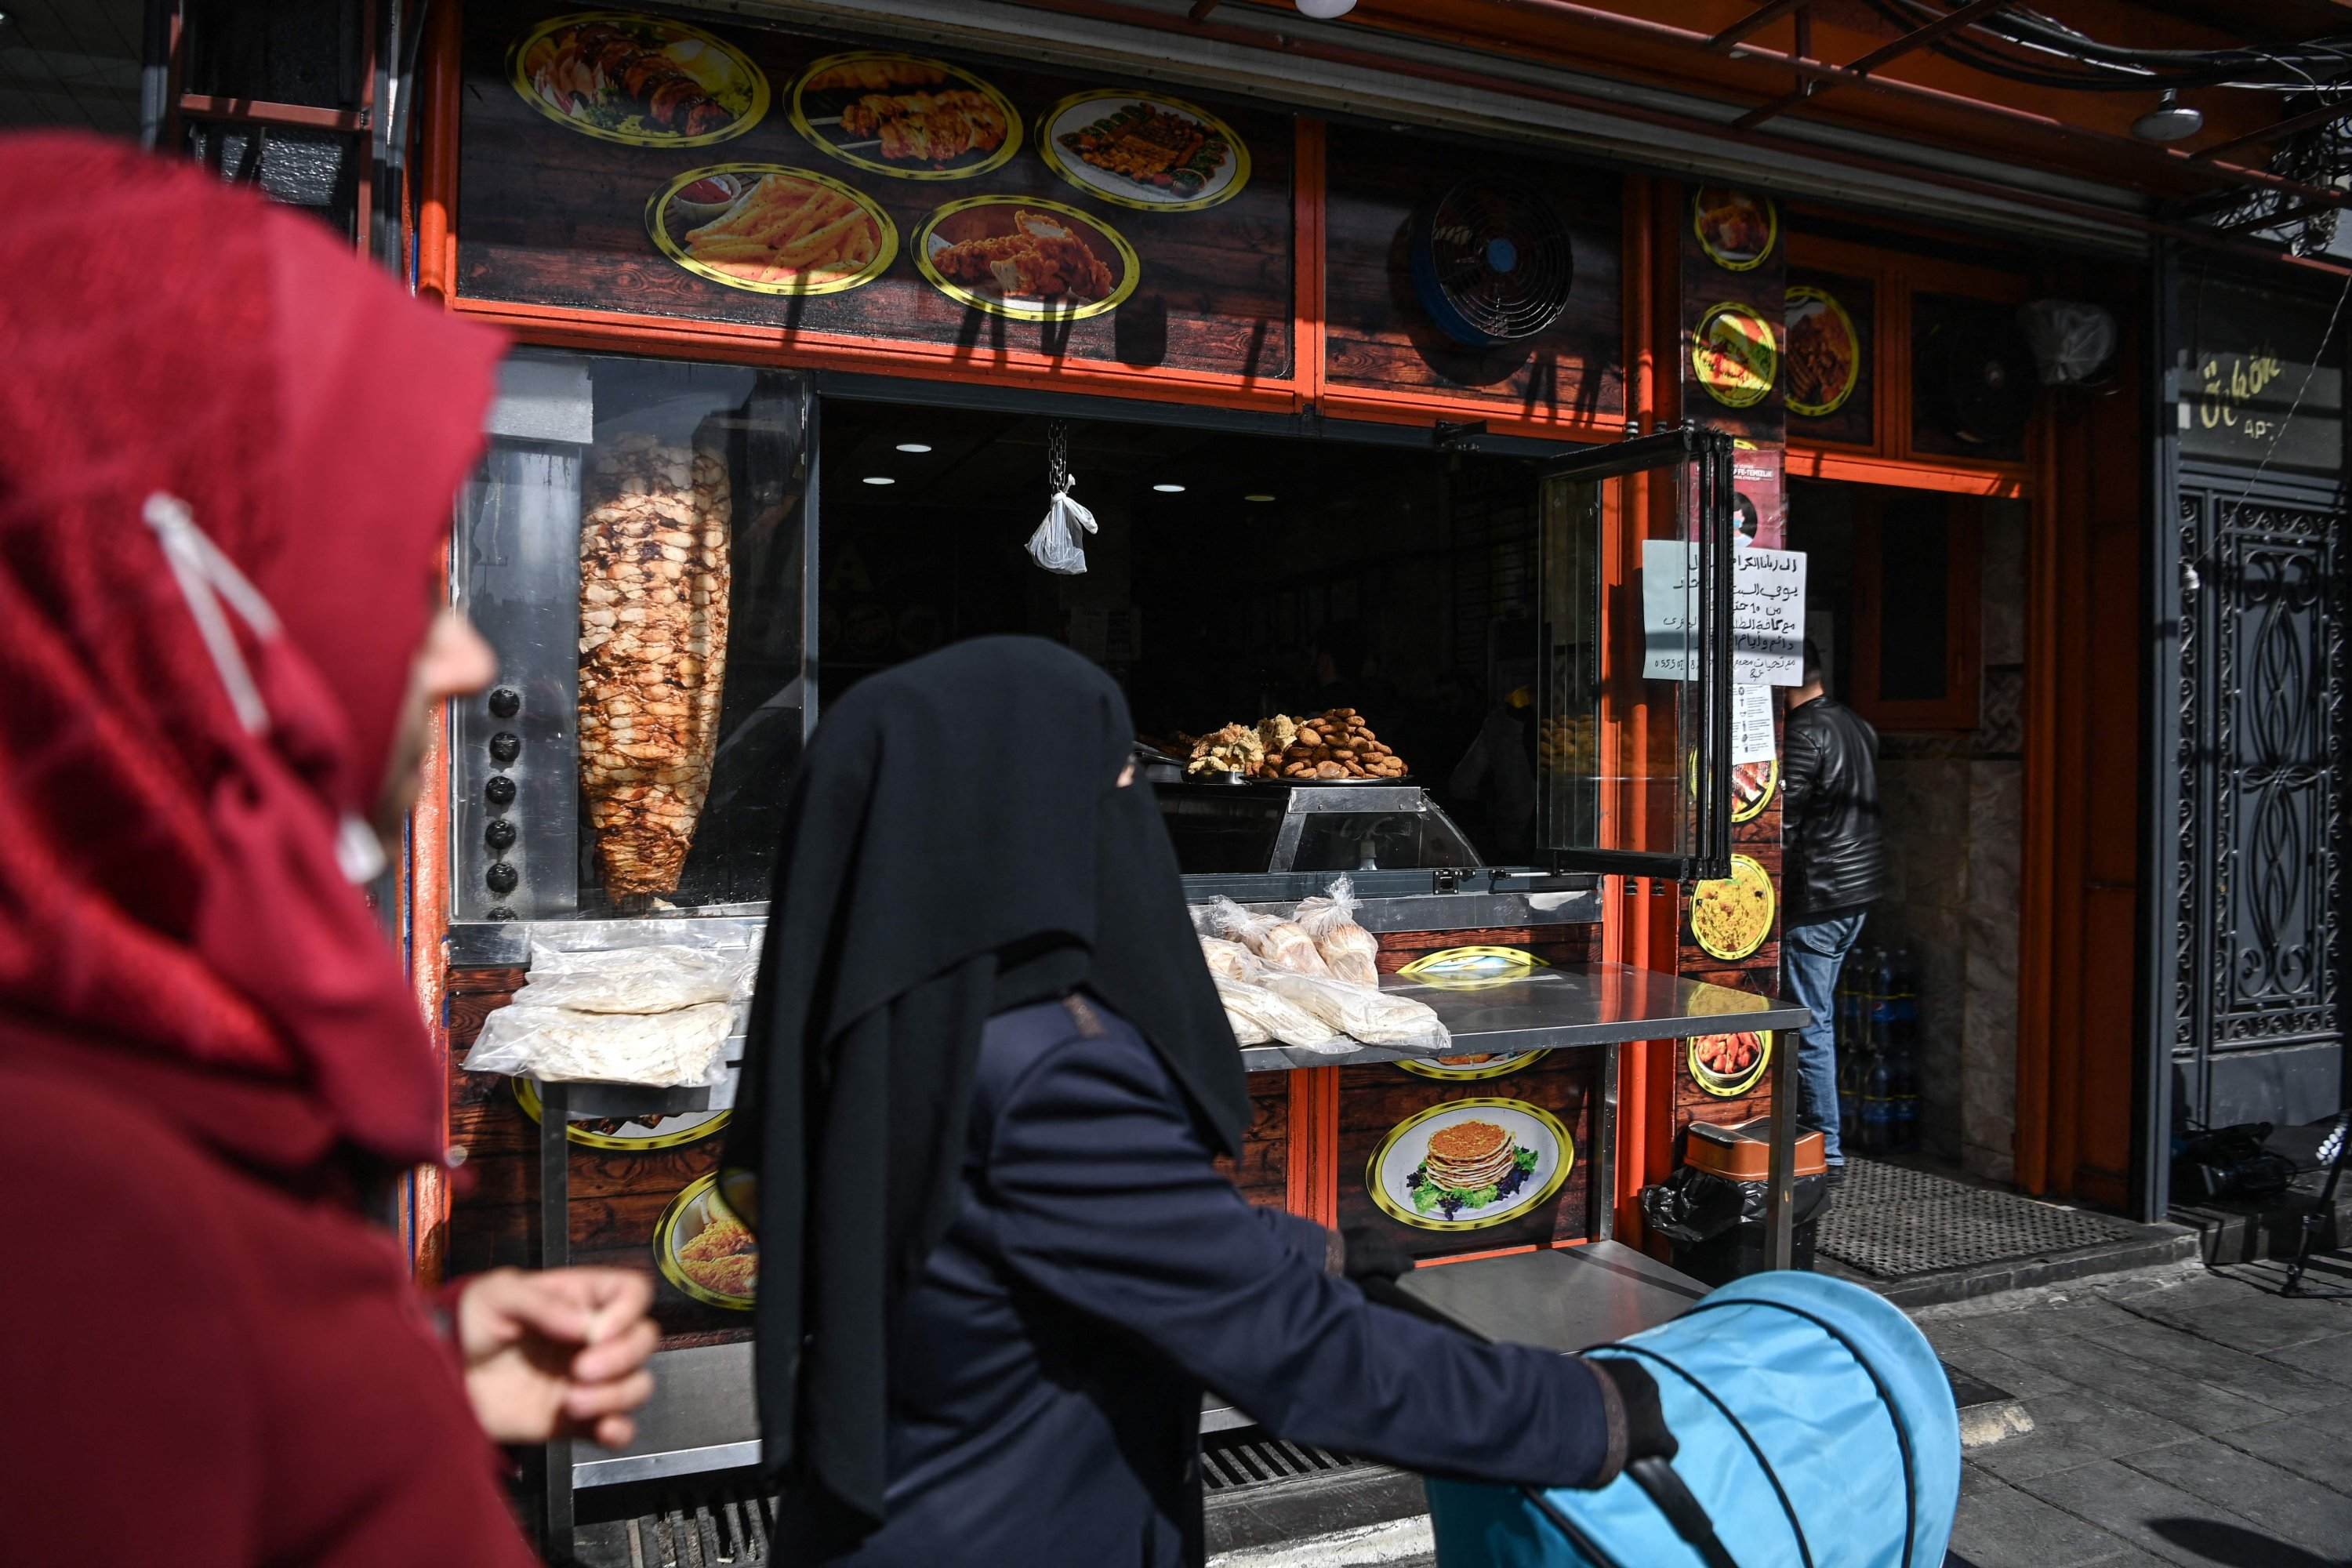 Syrian families pass in front of a Syrian grill shop at Inonu street in Gaziantep, Turkey, Feb. 25, 2021. (AFP)